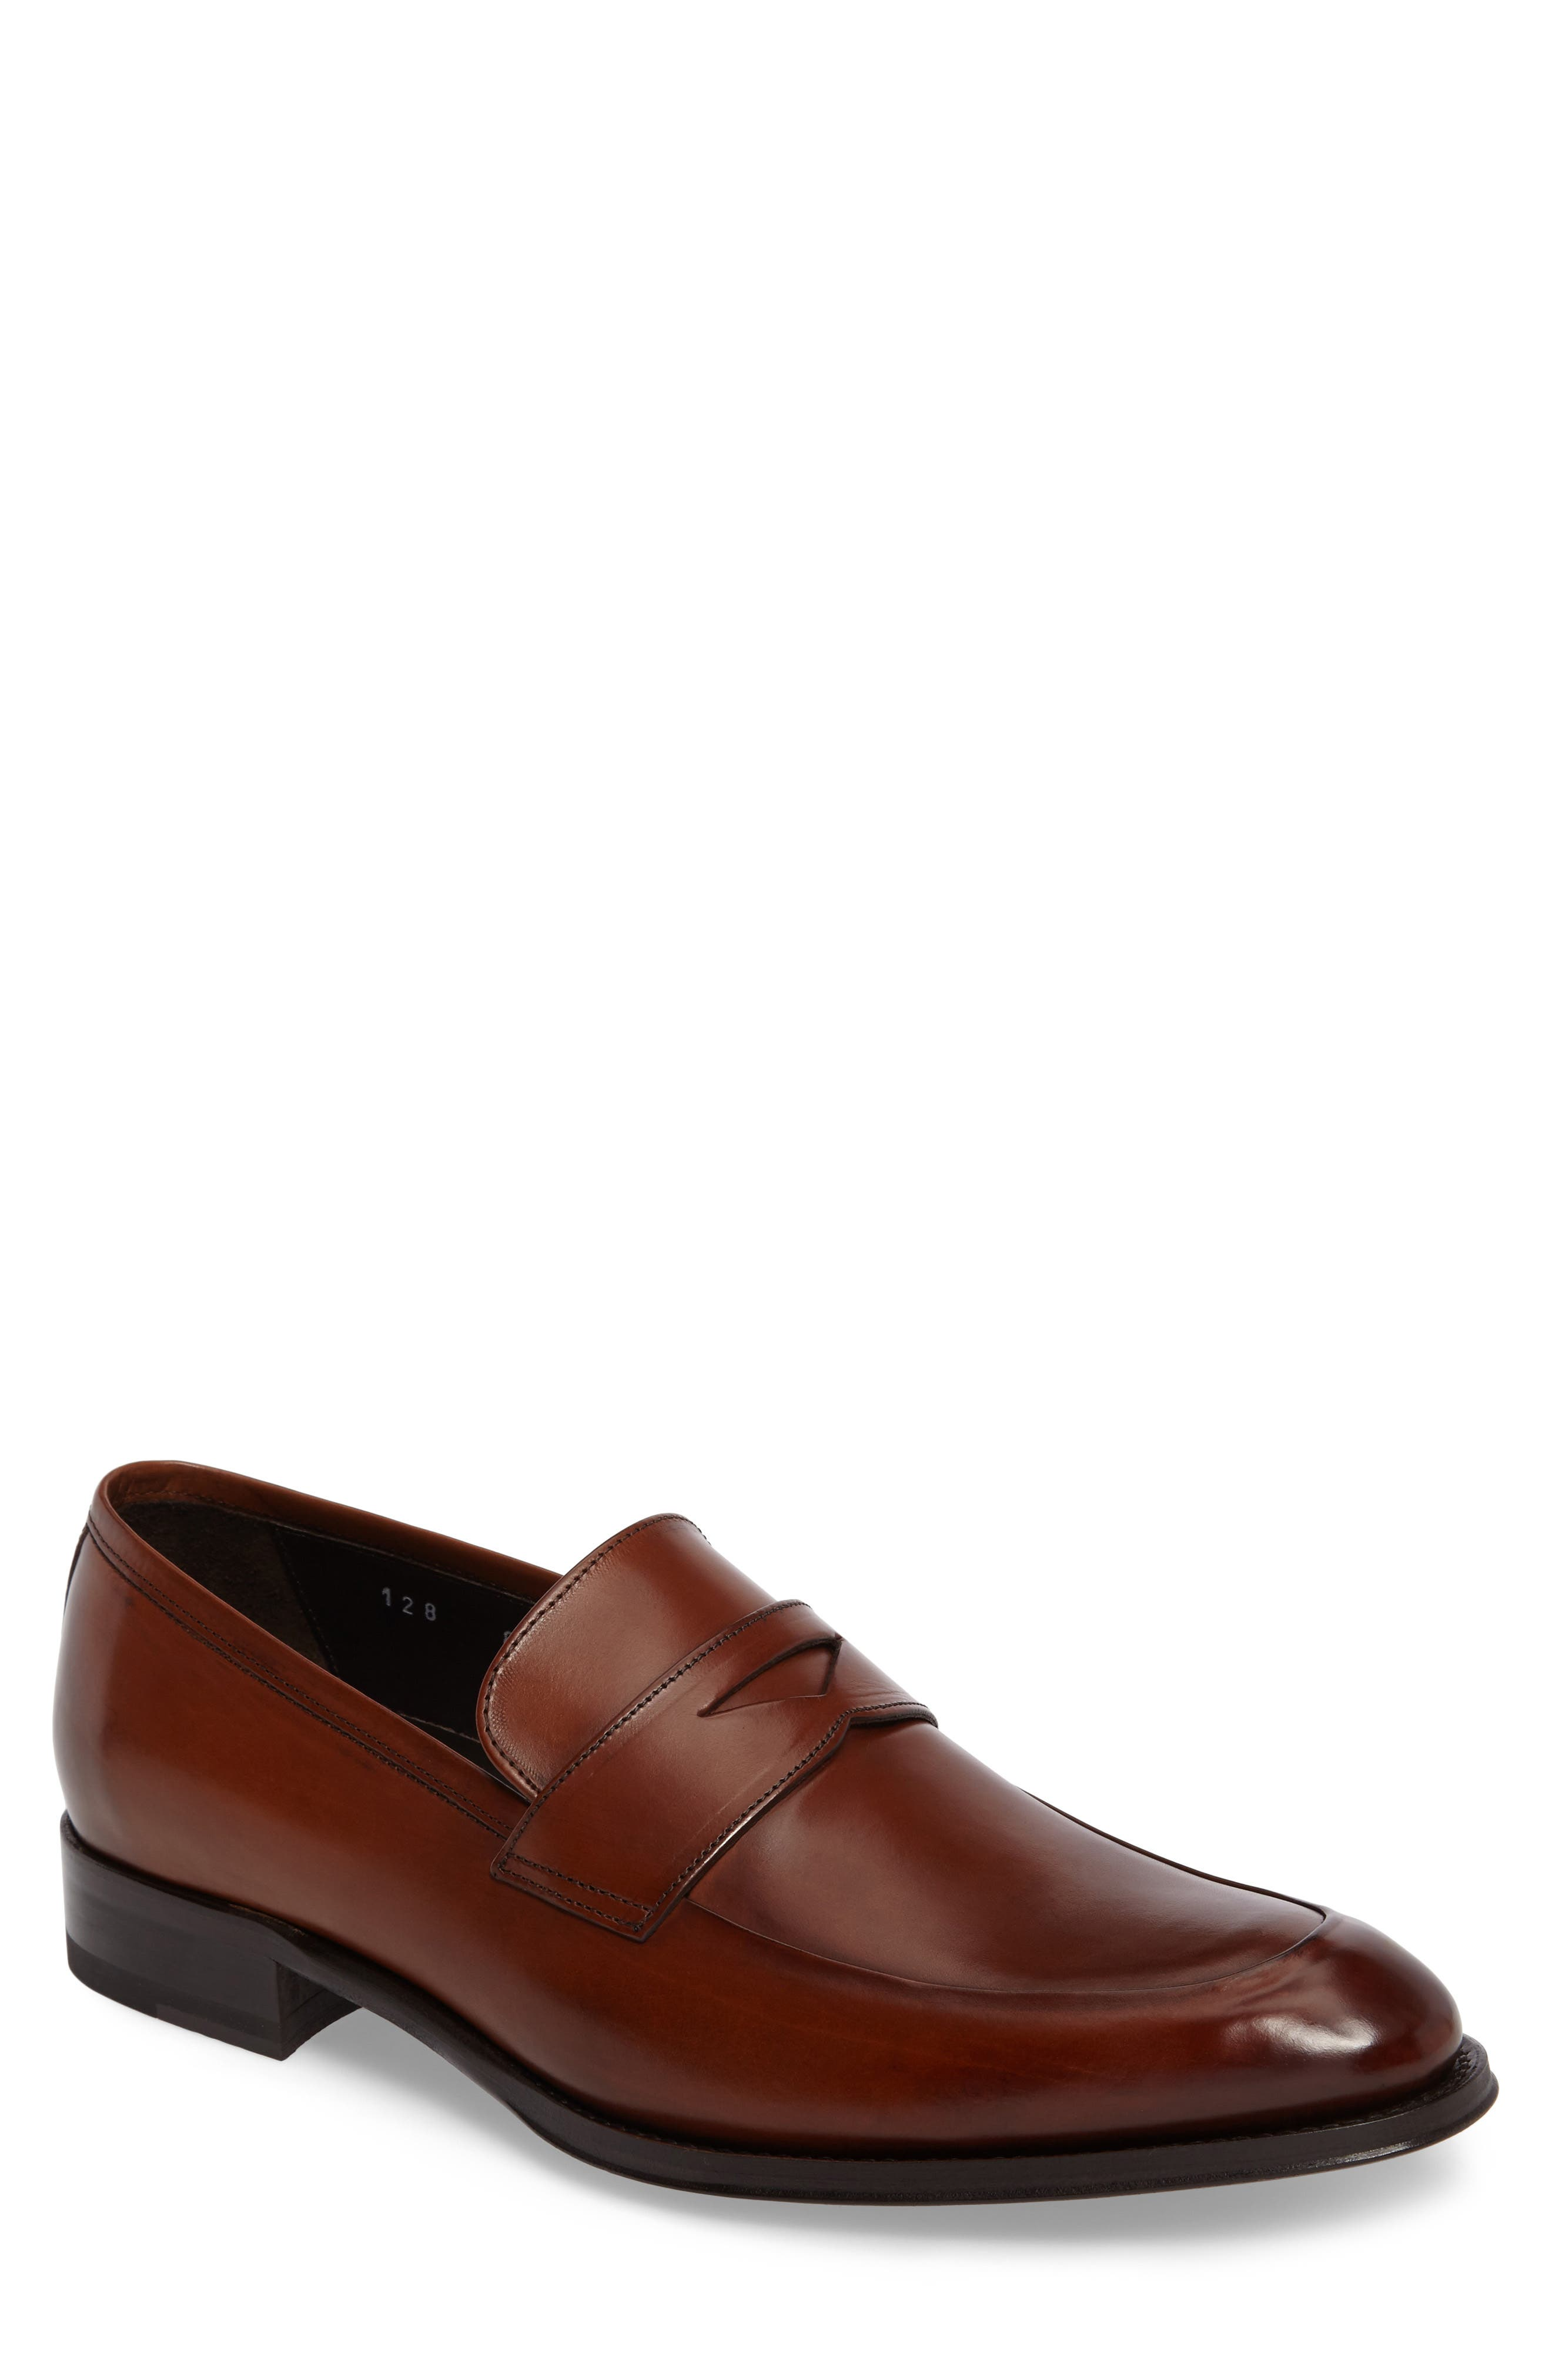 Francis Penny Loafer,                         Main,                         color, Brown Leather